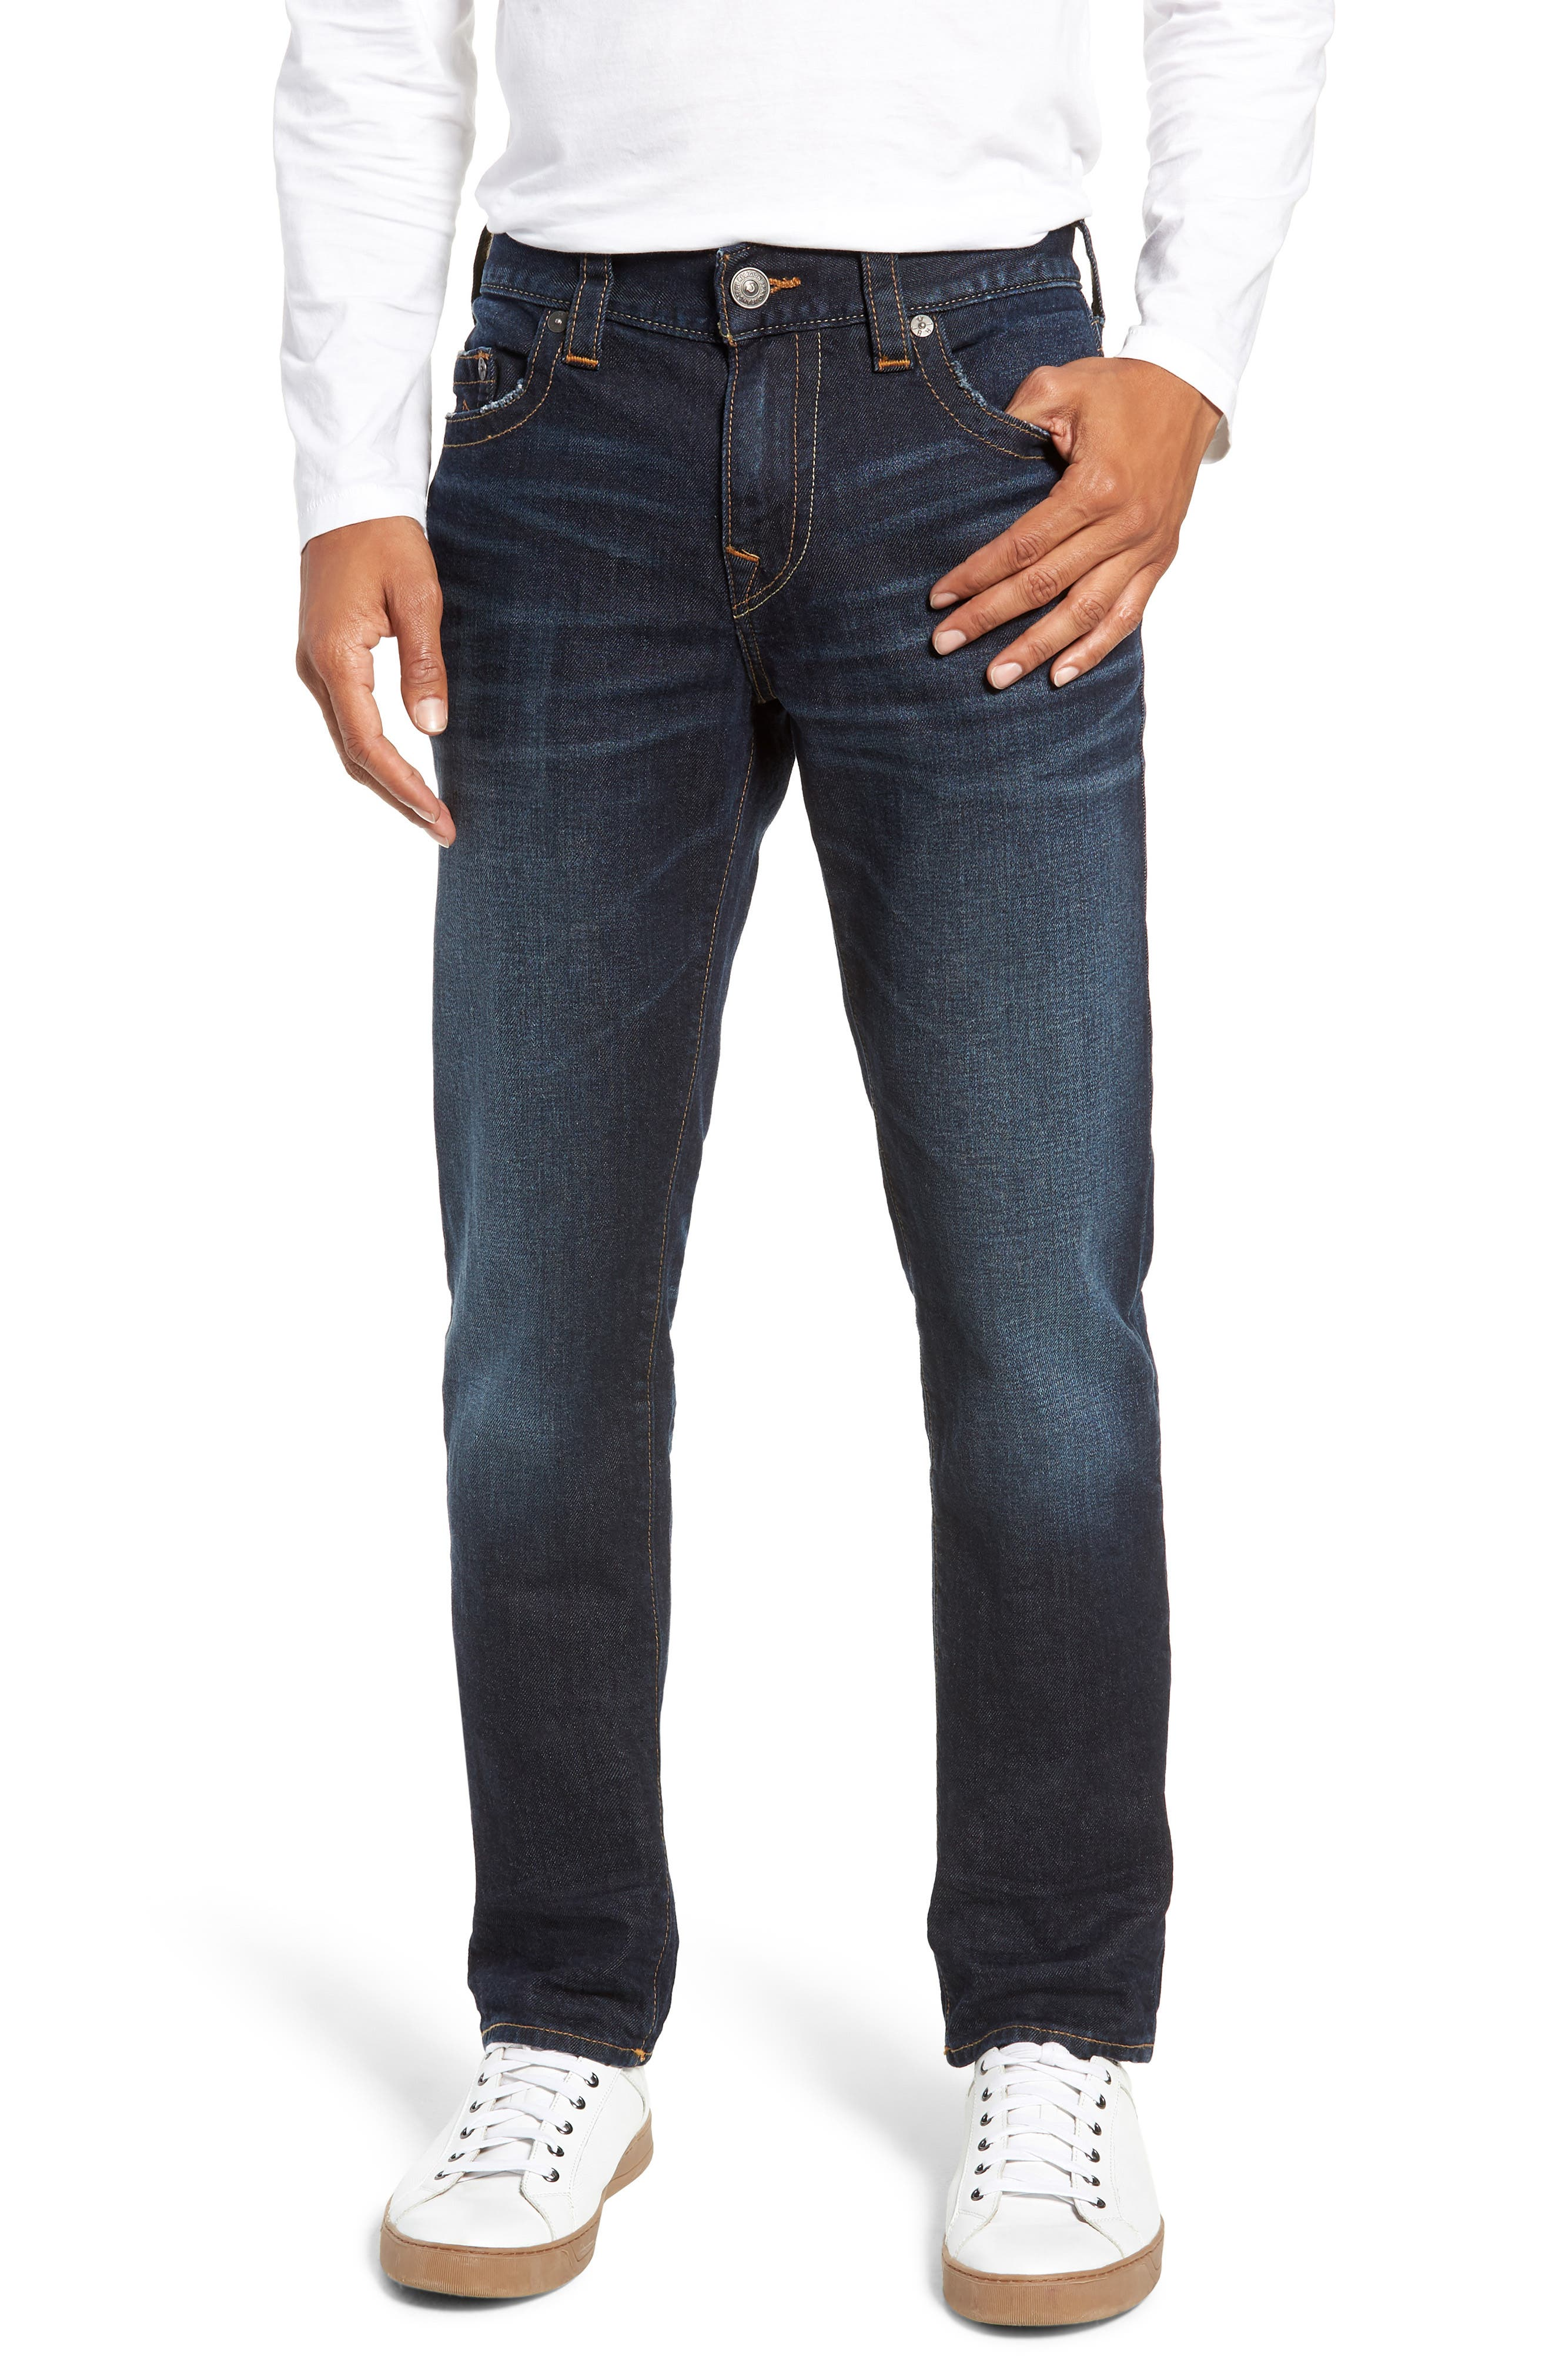 Rocco Skinny Fit Jeans,                         Main,                         color, DARK TUNNEL